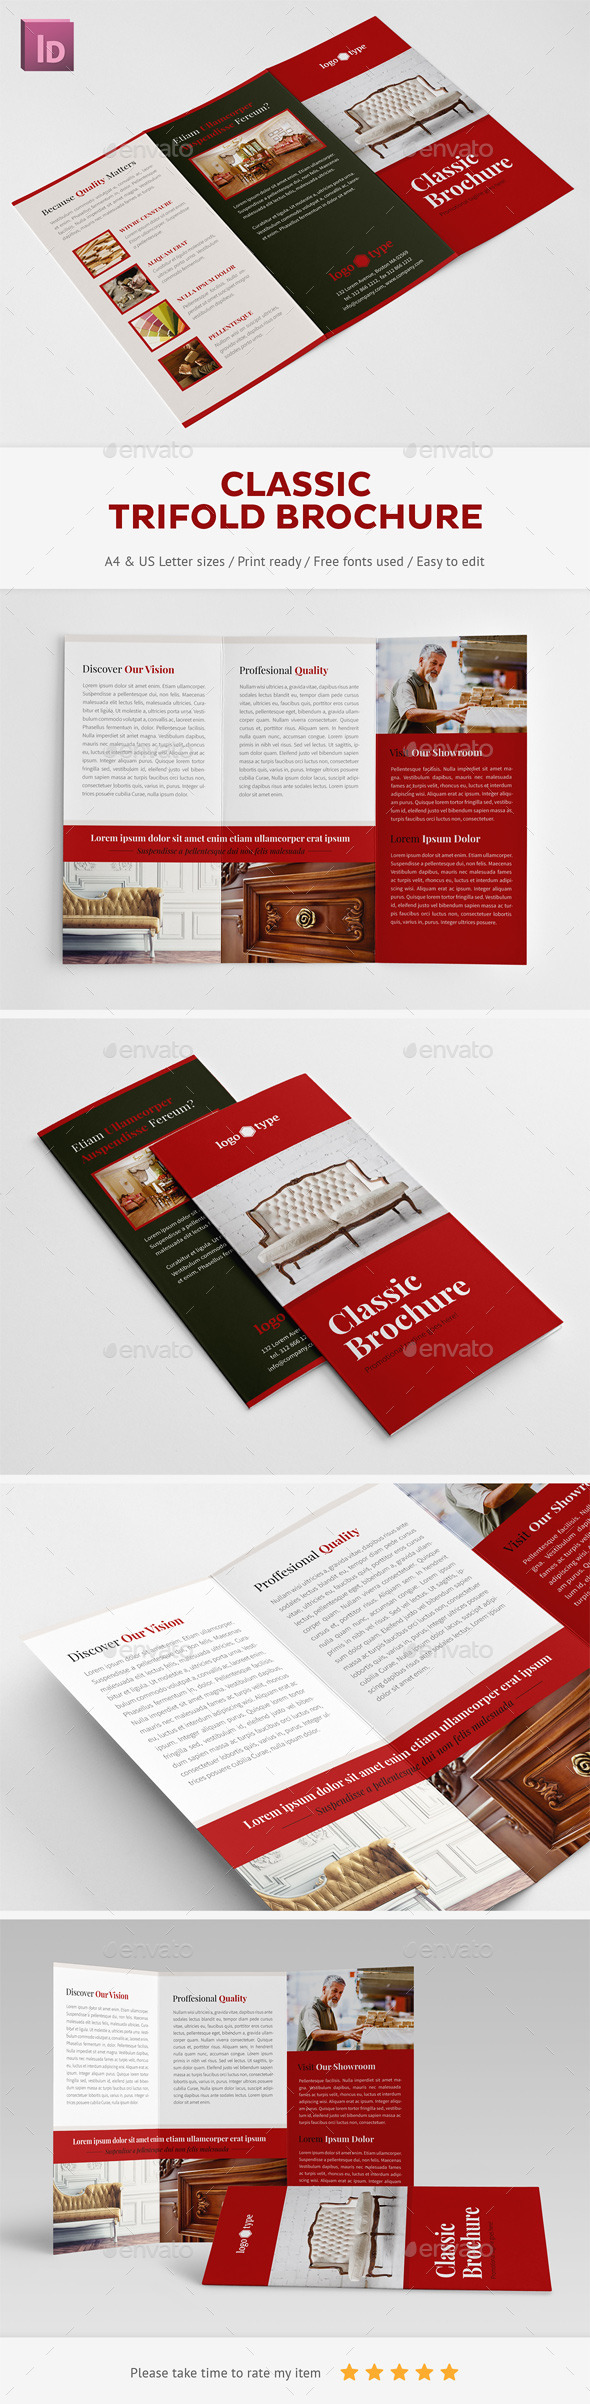 Classic Trifold Brochure